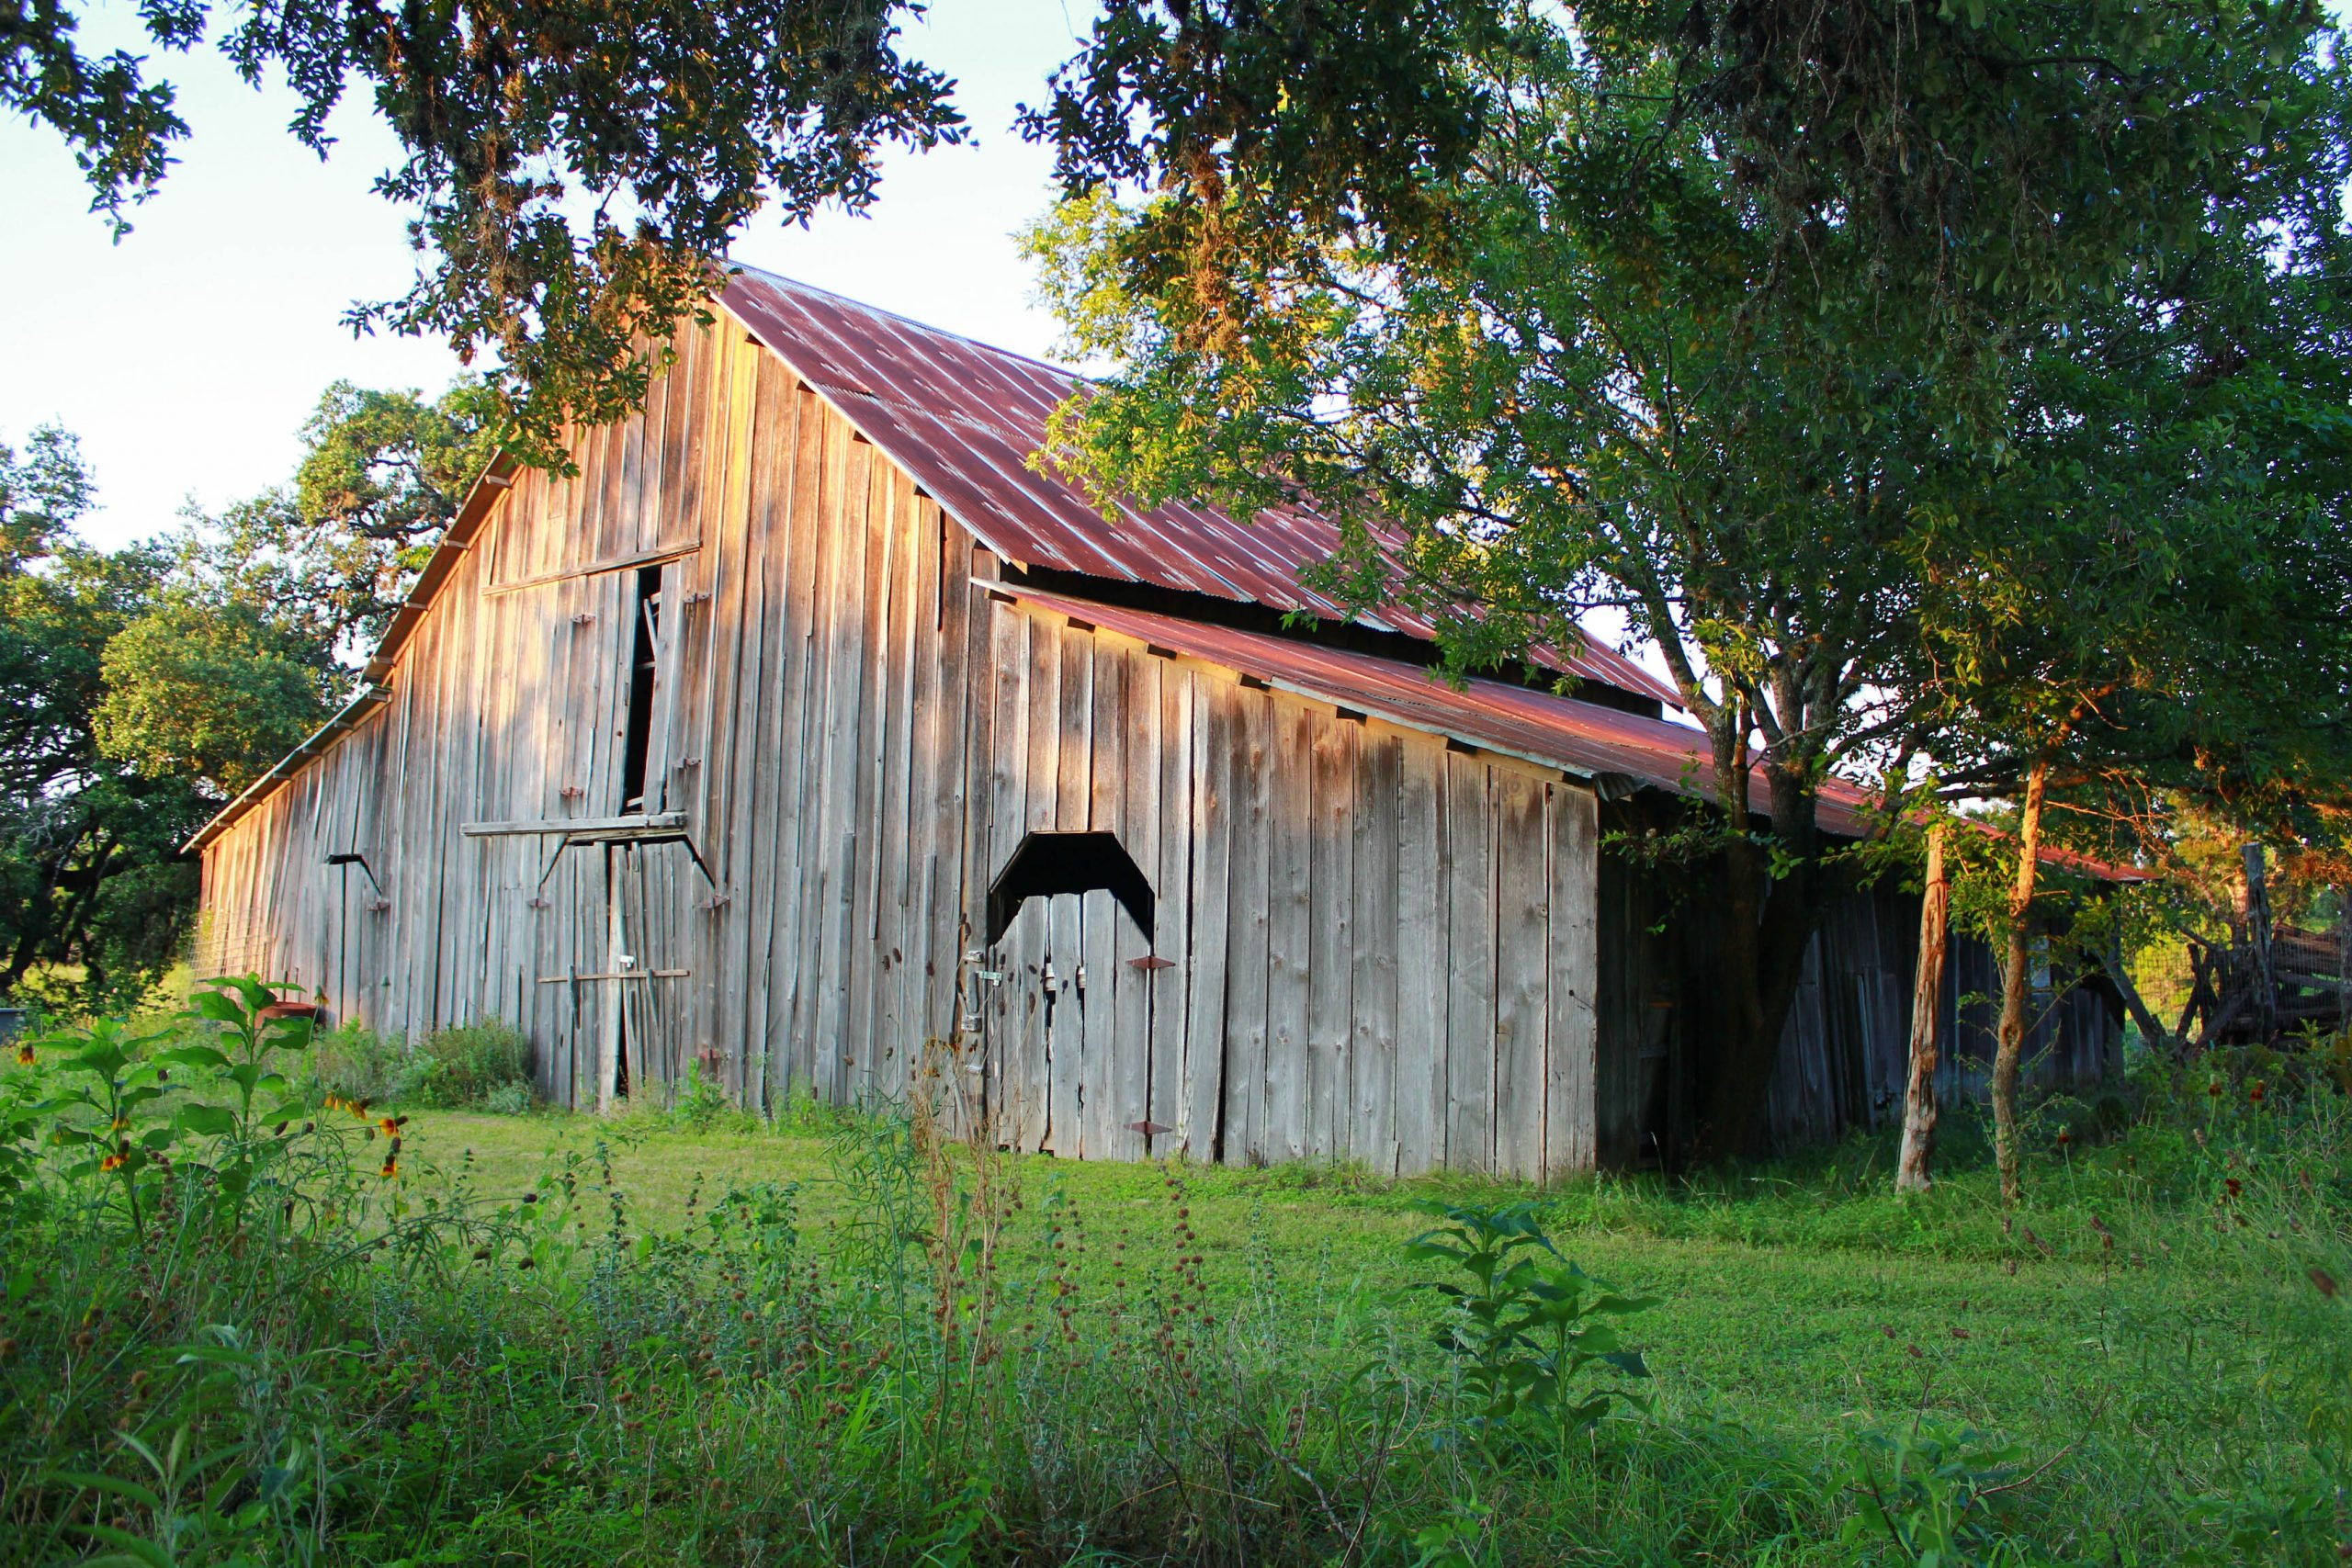 A barn on the grounds of Cibolo Nature Center. Courtesy of Cibolo Nature Center & Farm.